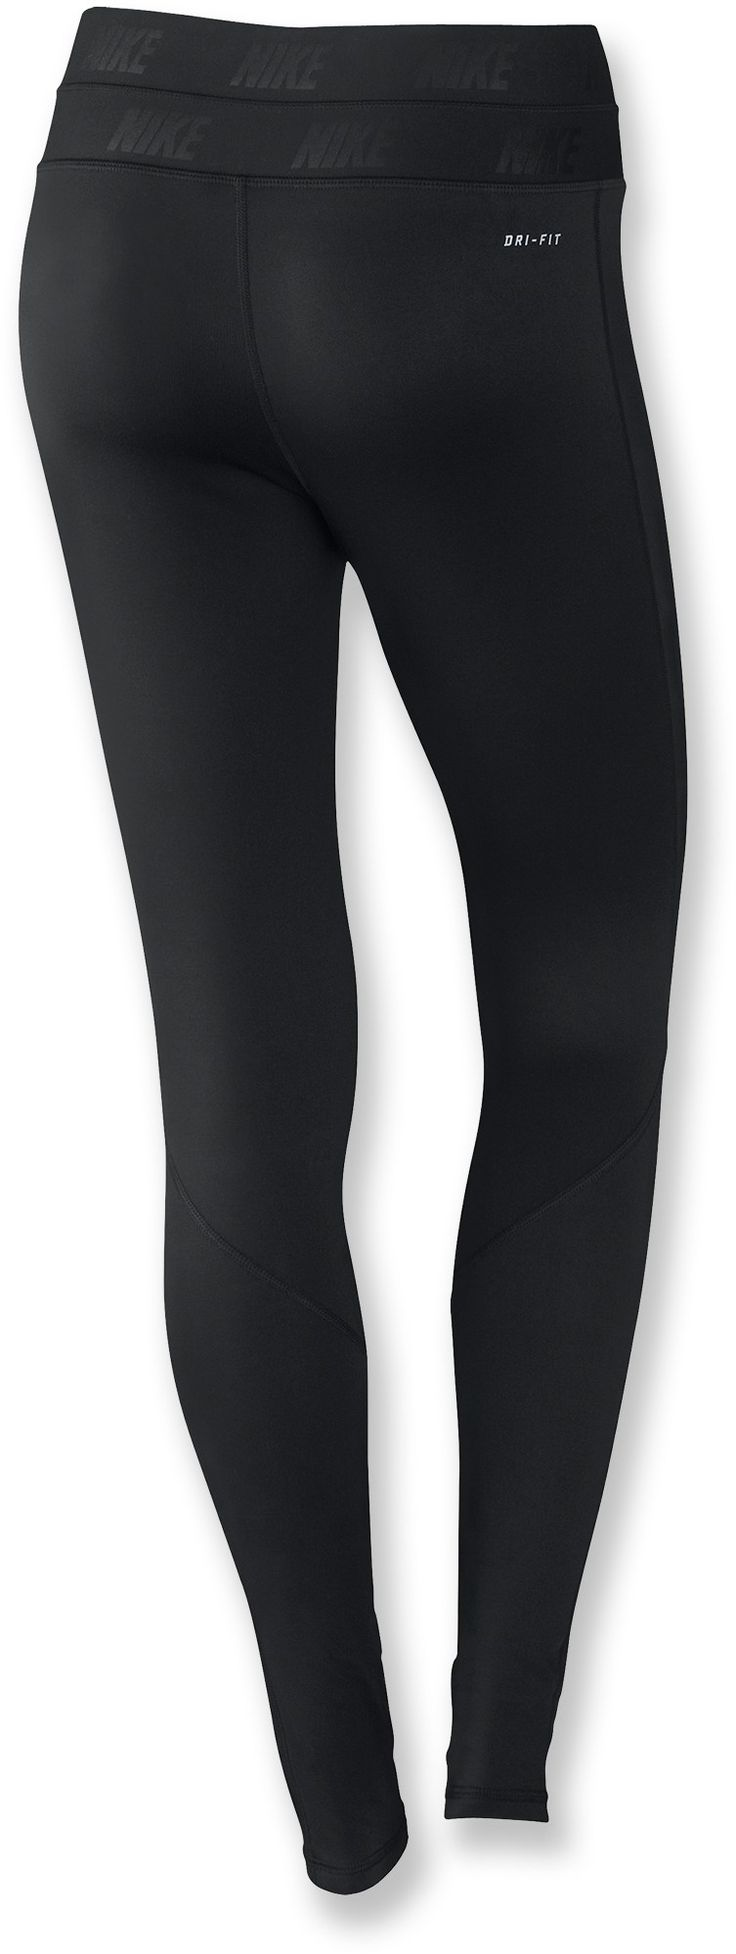 Women's Nike Pro Hyperwarm II Tights for long winter runs.... Gonna have to get a pair of these when I move to Chicago!